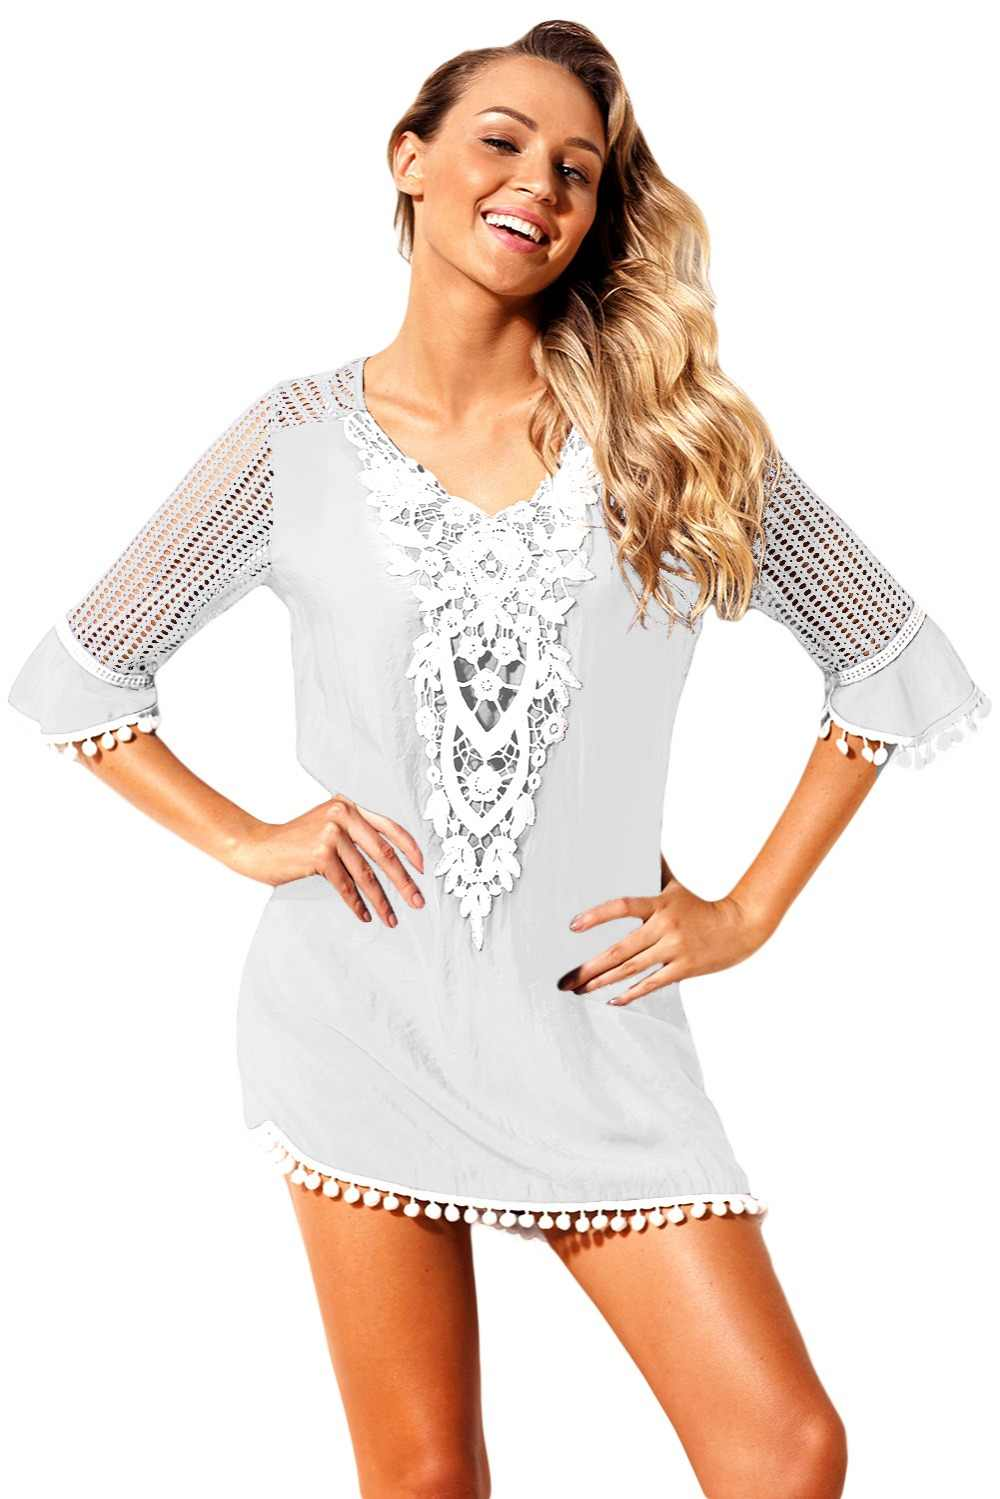 f709aff99d690 Zmvkgsoa Kaftan Beach Dress Women Summer Wear Crochet Mini Dresses Clothing  Tunic Beachwear For Girls Saida De Praia V42231